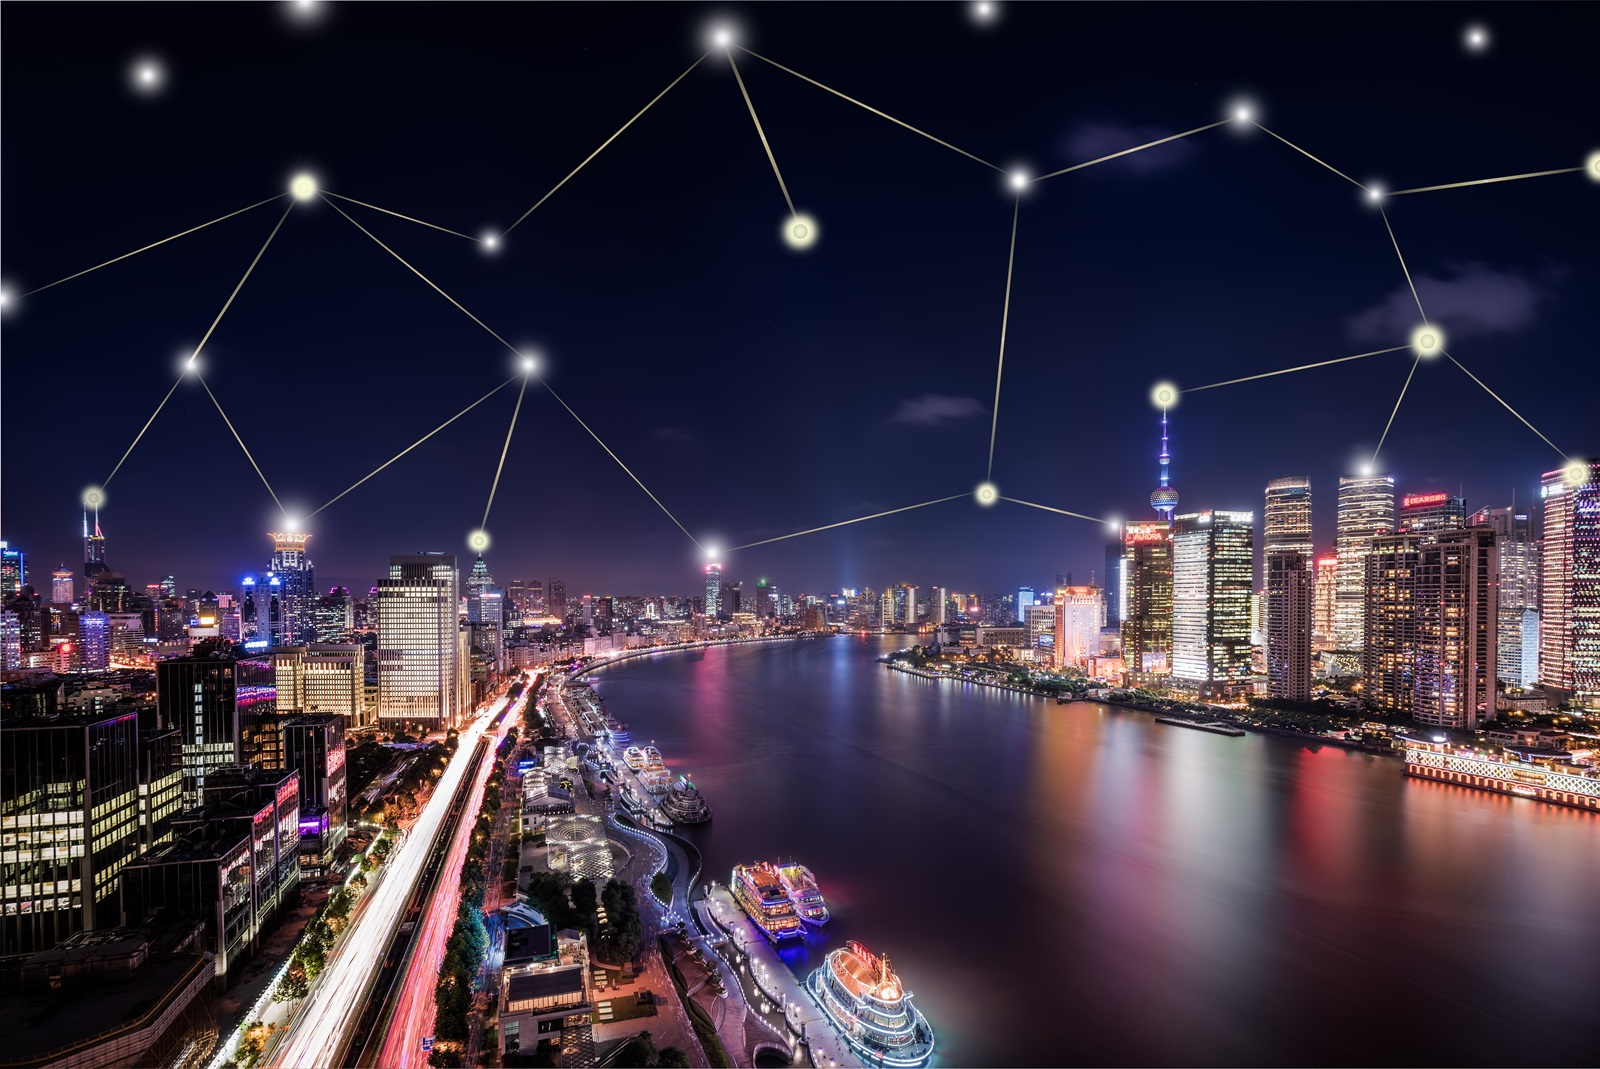 Using Data and Analytics to Drive Infrastructure Development